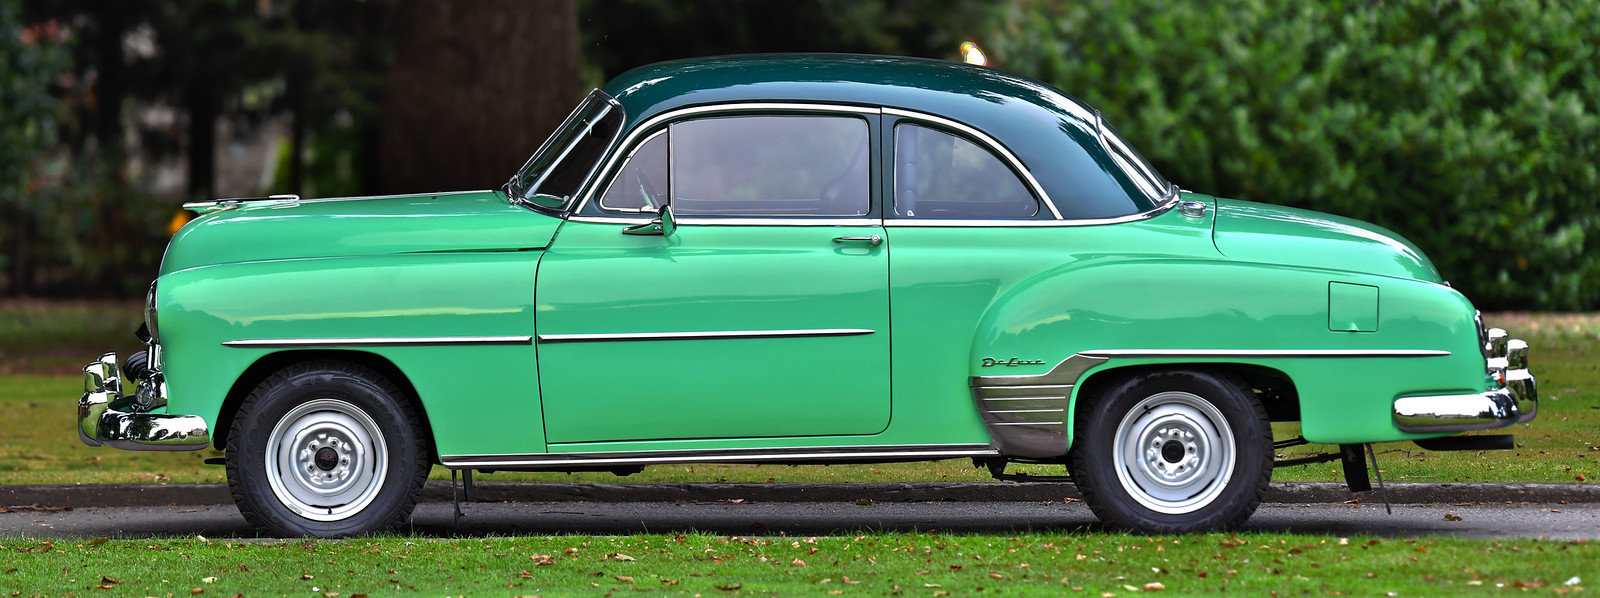 1952 Chevrolet Styleline Deluxe Coupé coachwork by Fisher Ra For Sale (picture 3 of 6)